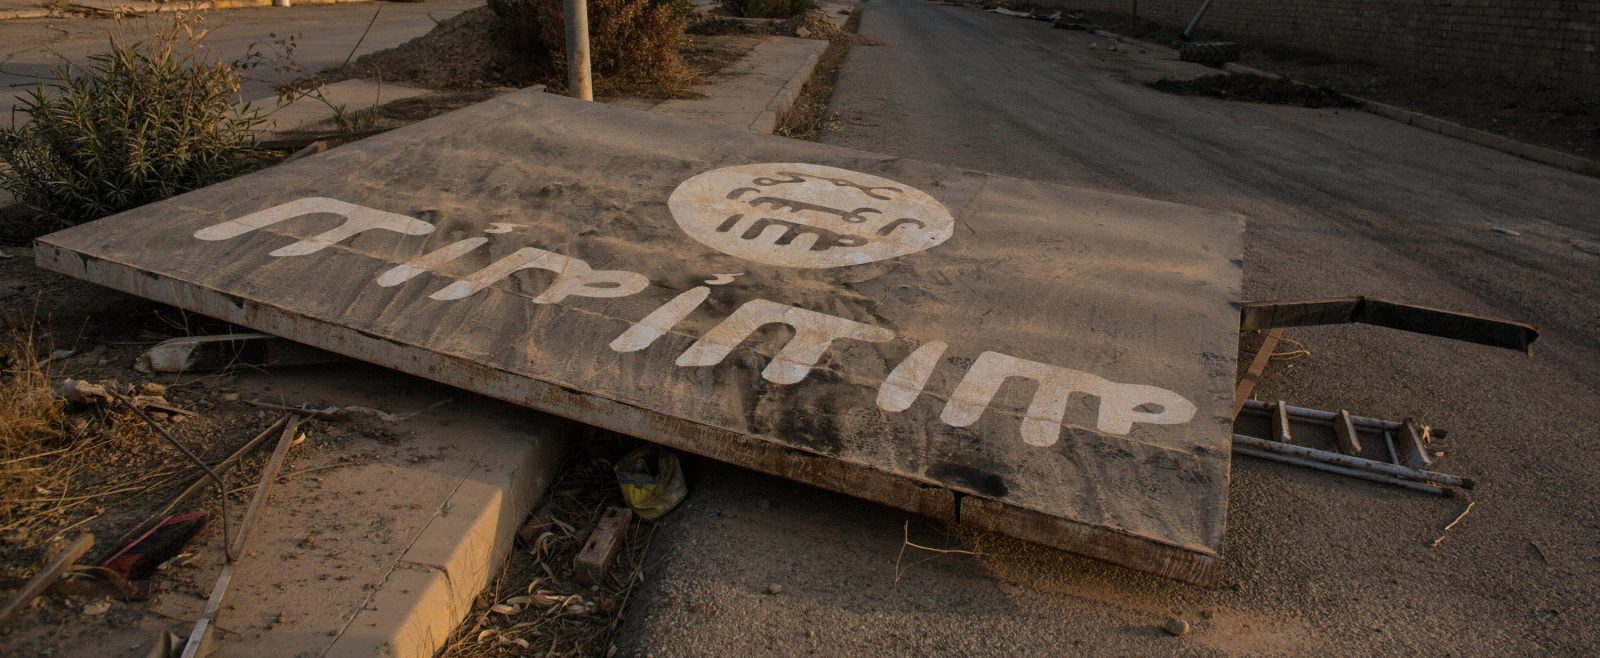 fallen billboard in Iraq